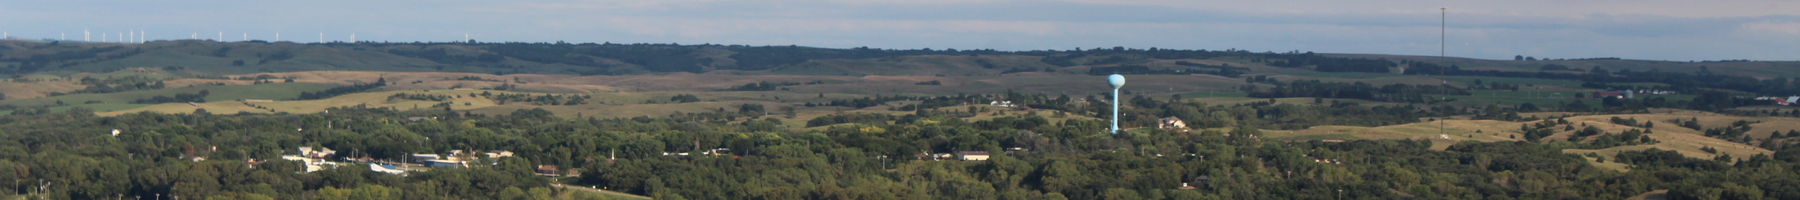 Niobrara Nebraska from nearby hill